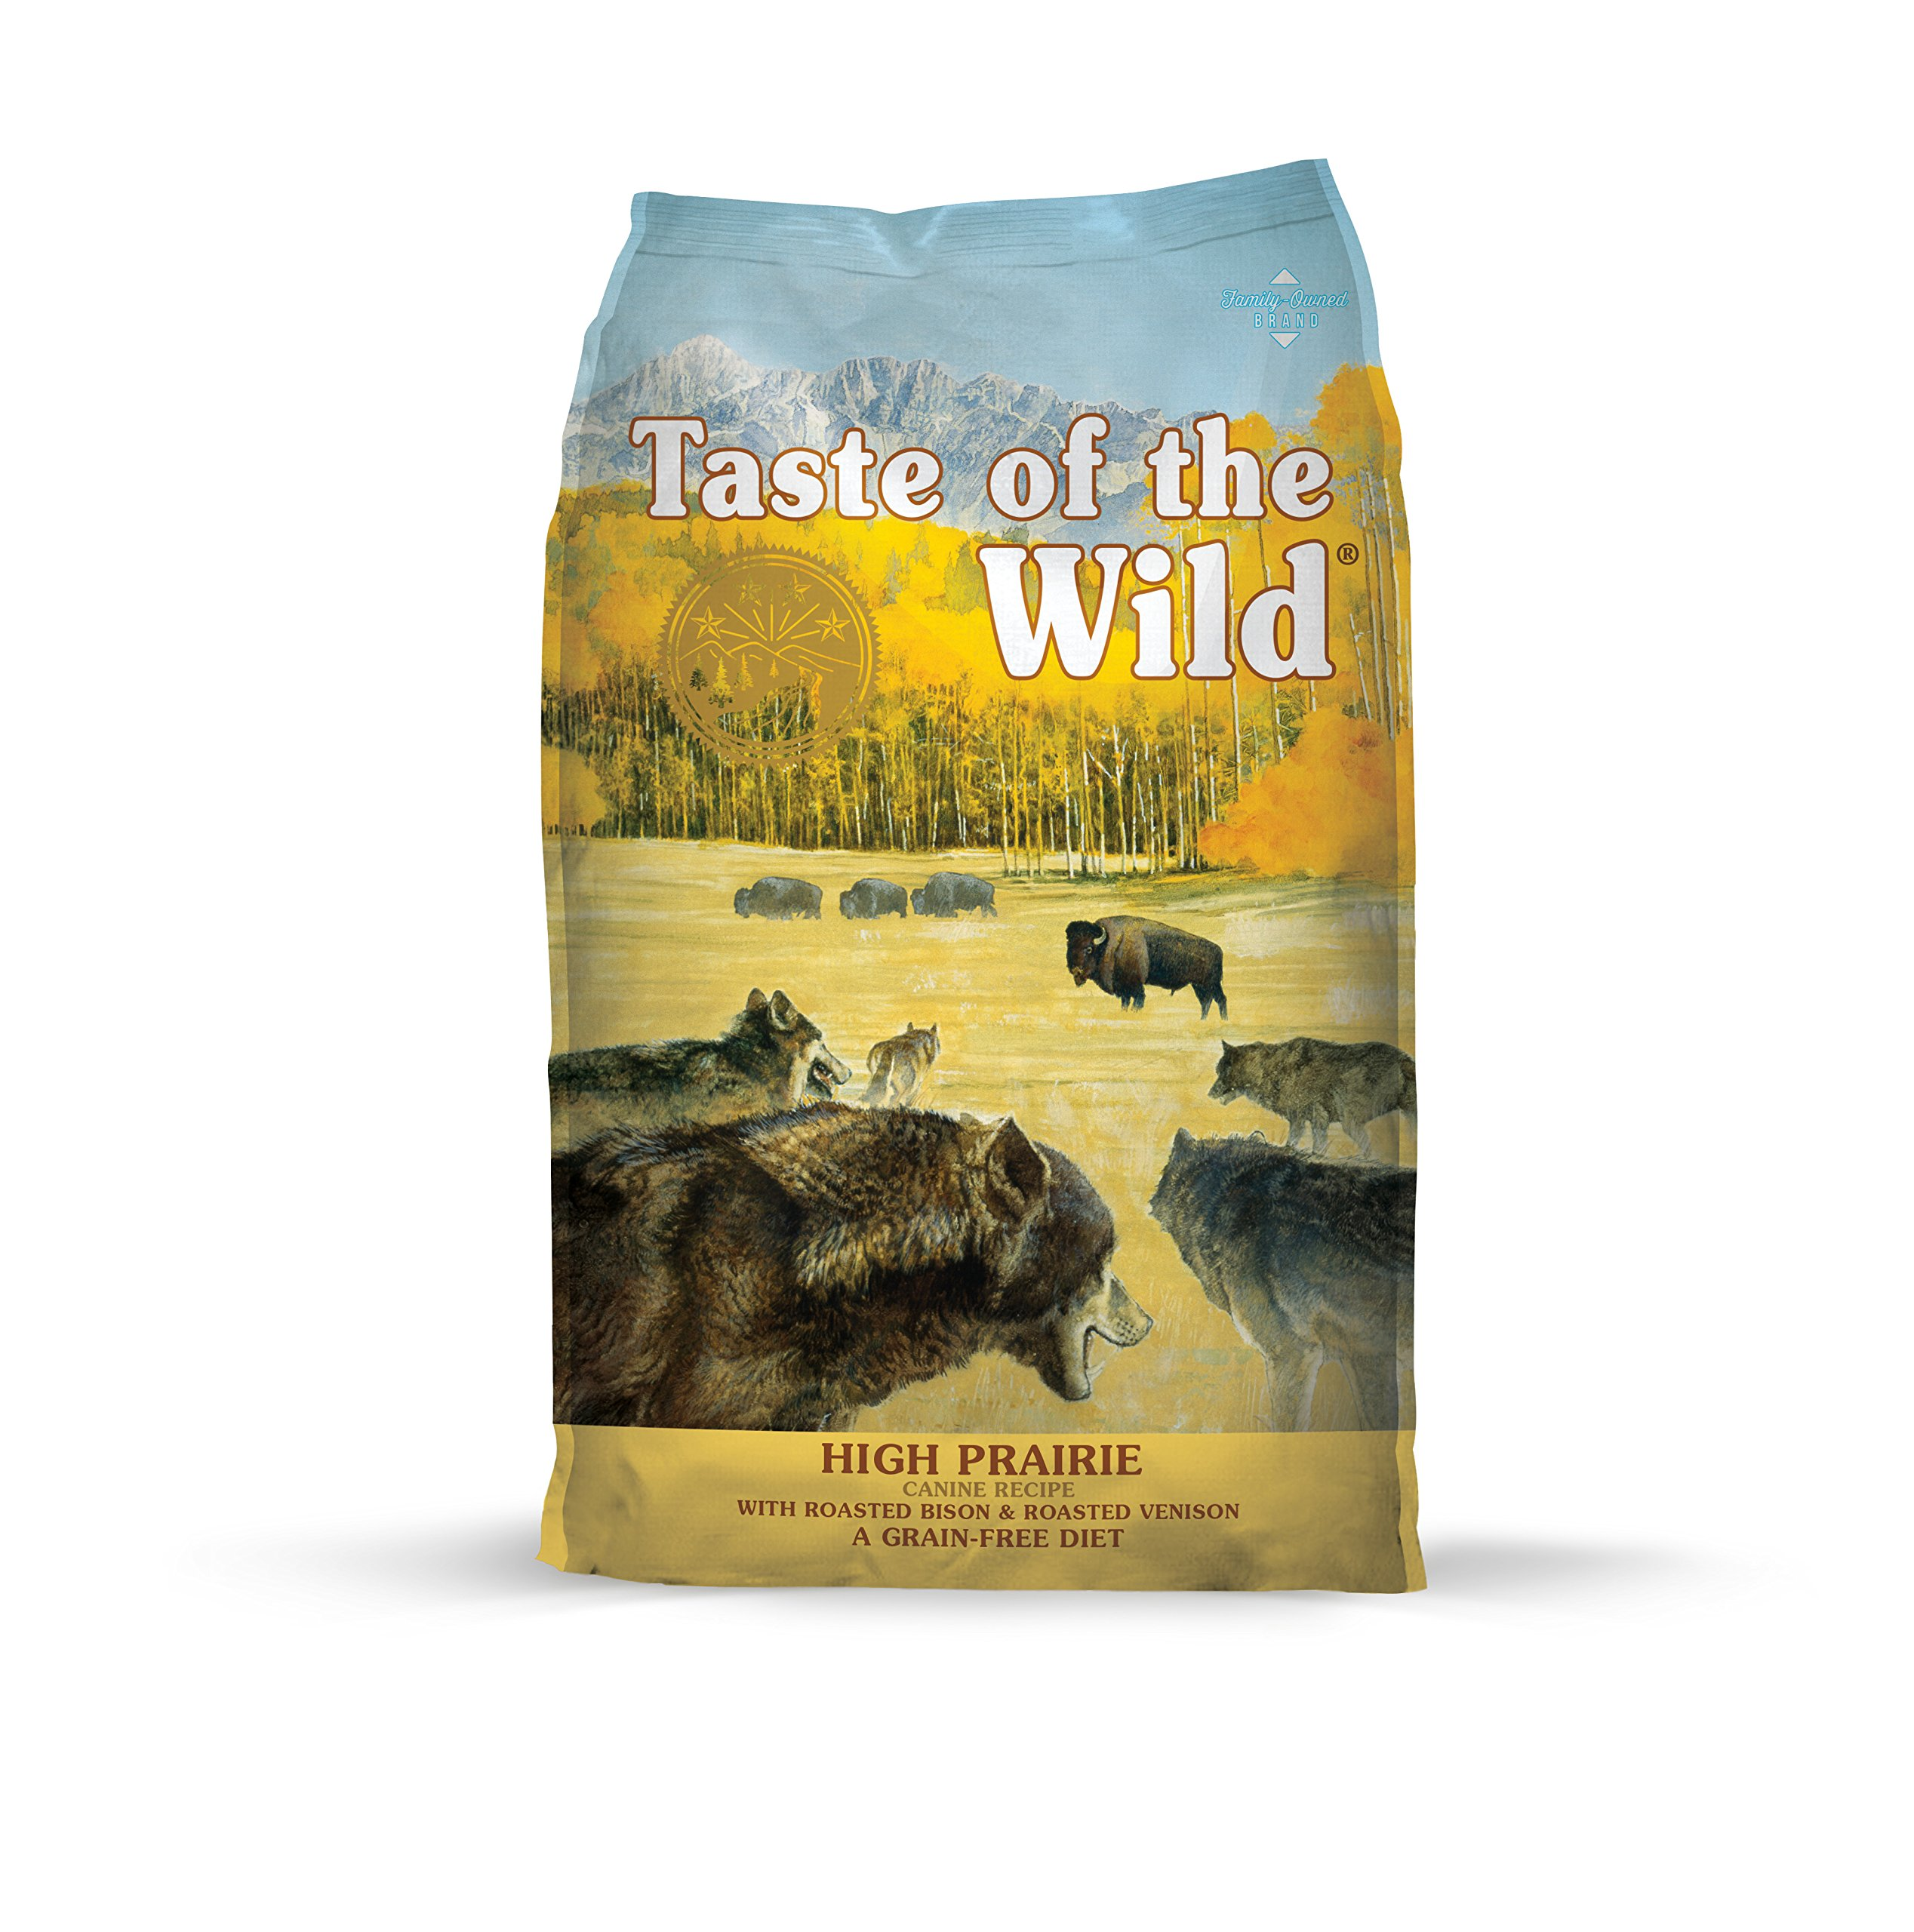 Taste of the Wild High Prairie Grain Free High Protein Real Meat Recipe Natural Dry Dog Food with Real Roasted Bison & Venison 5lb